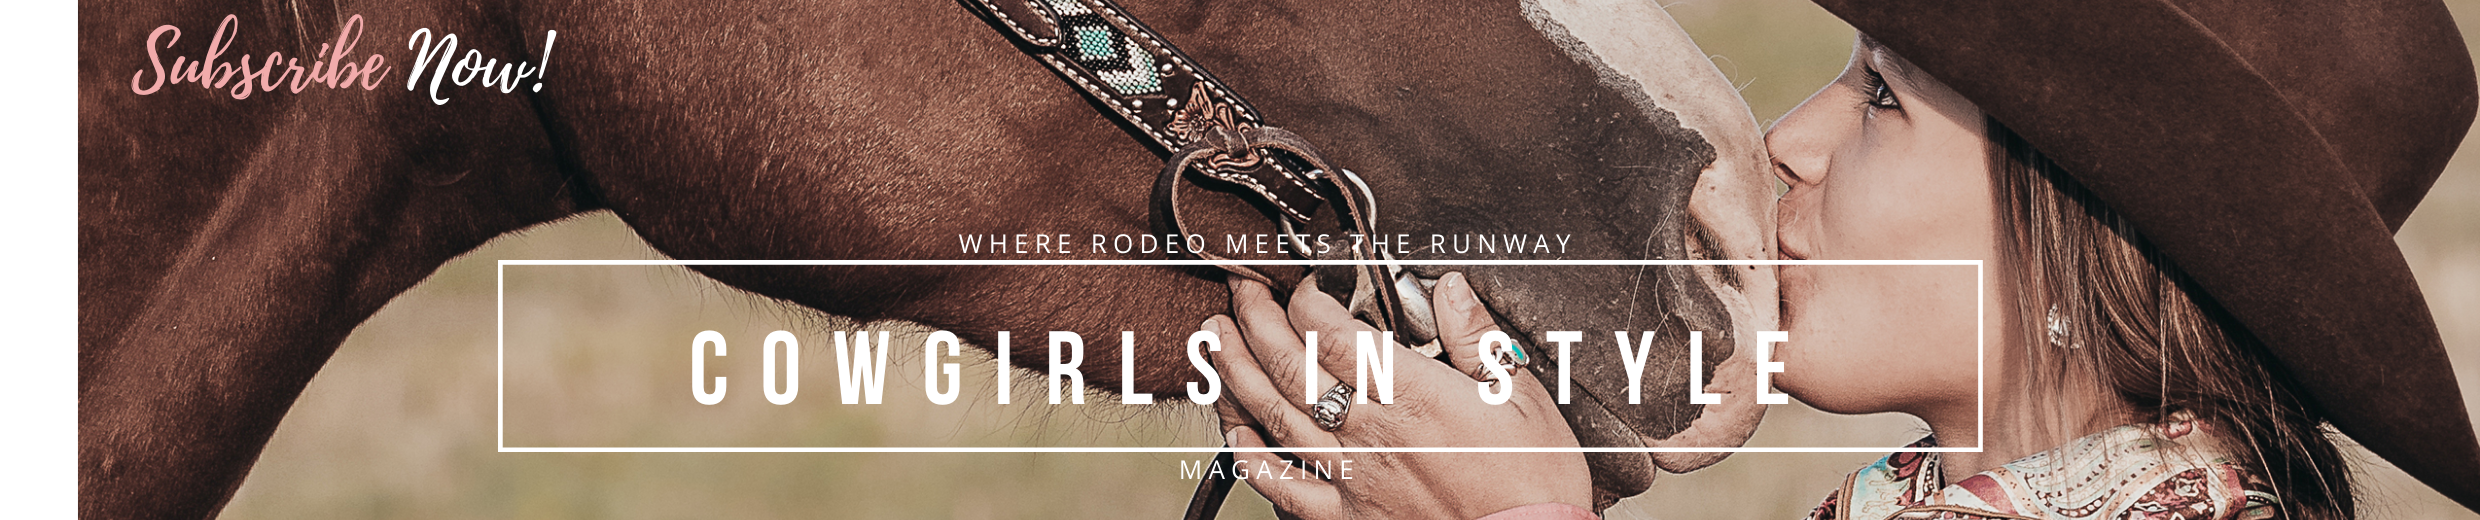 The Impact Legendary K.T. Oslin's 80's Ladies Had On Women - Cowgirls In Style Magazine